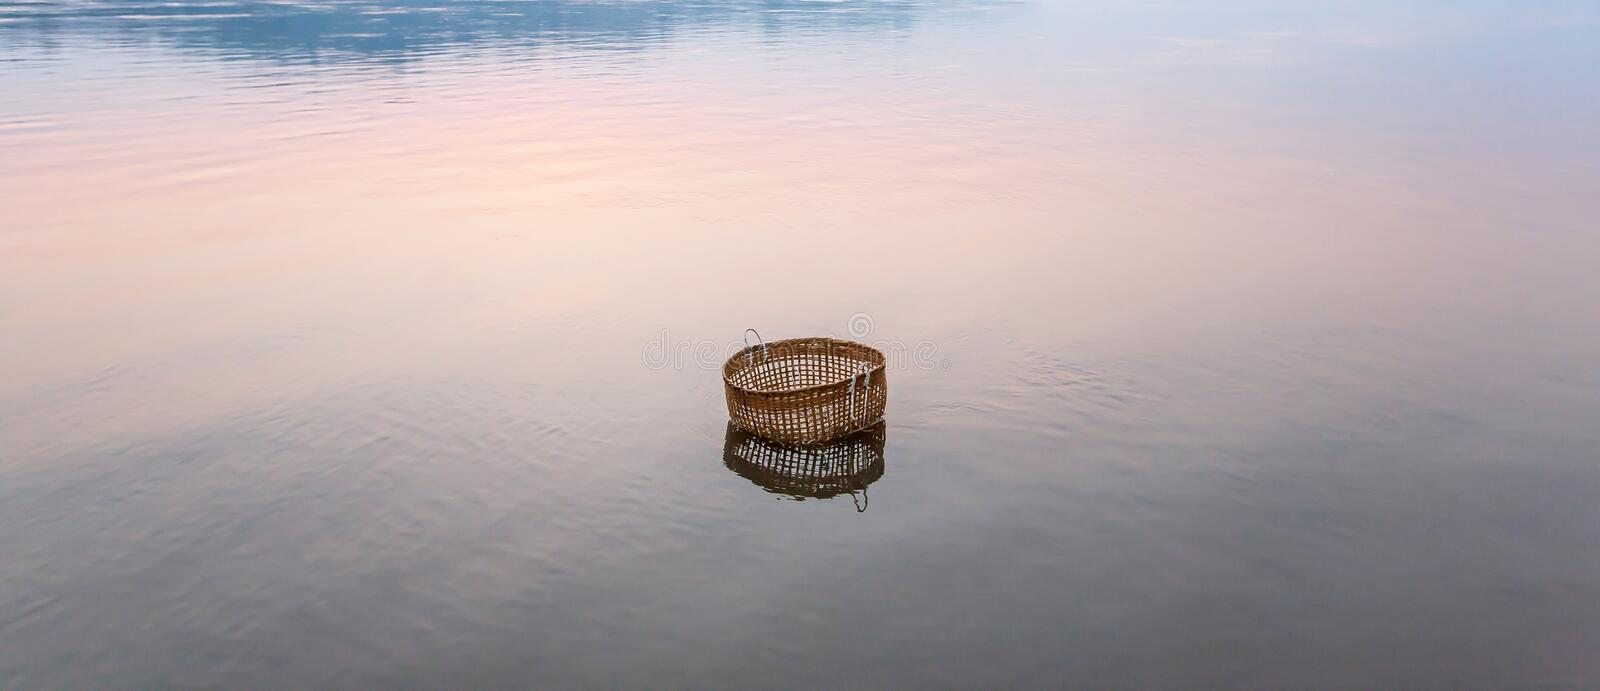 Peaceful serene by river, a bamboo basket is dipping in the Mekong River on winter morning, still life in rural Laos stock photo